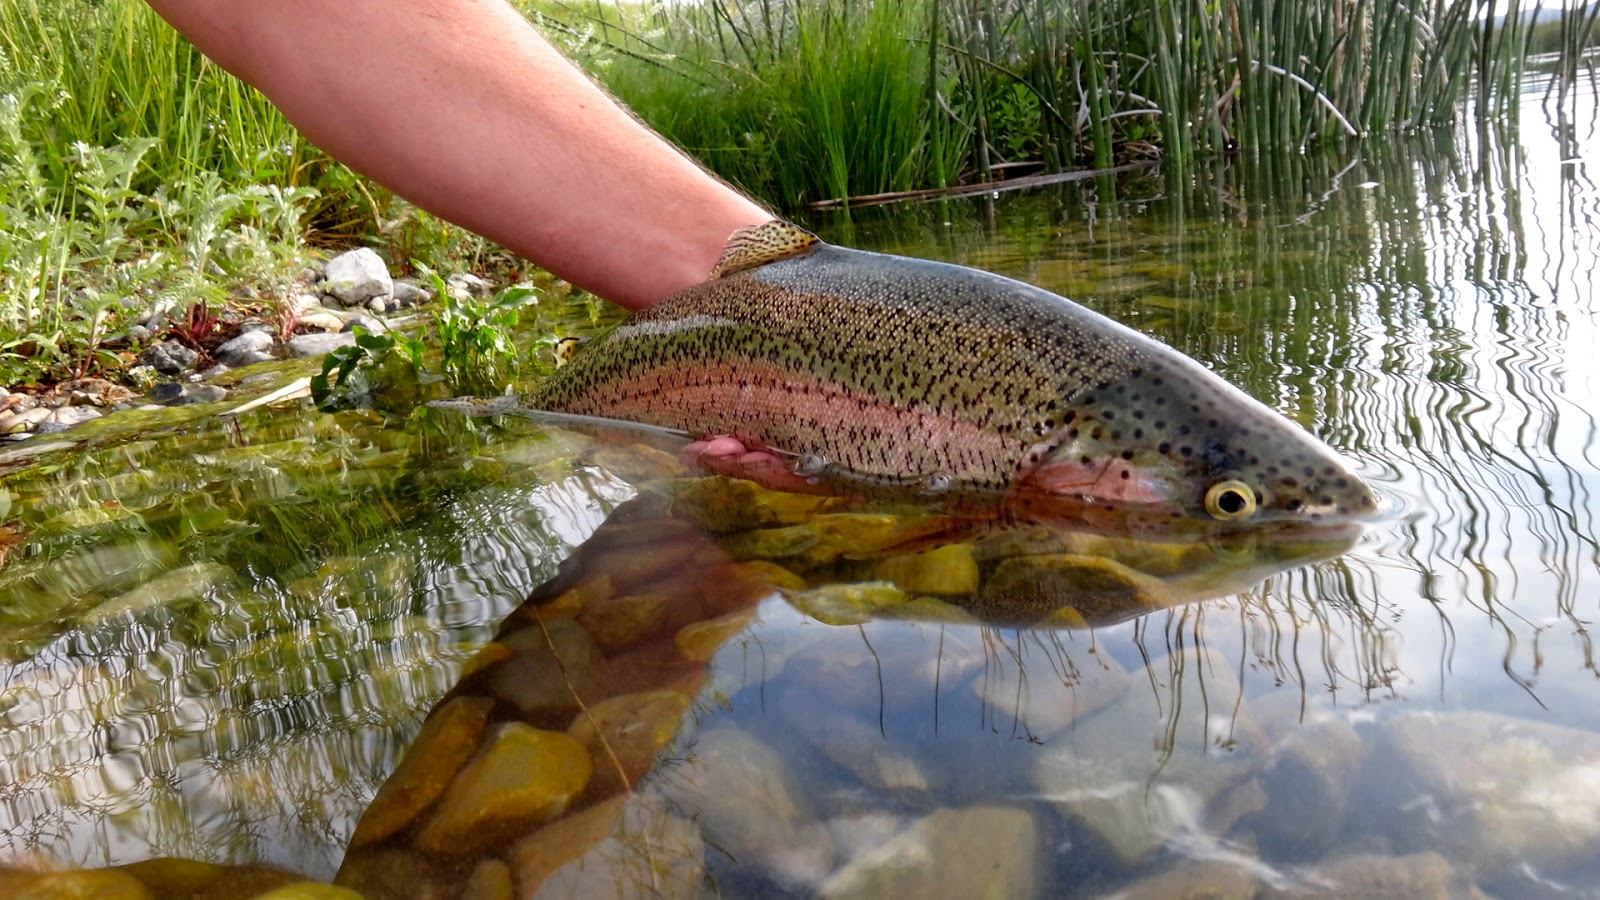 The fly syndicate eastern nevada camping and fishing for Fly fishing nevada